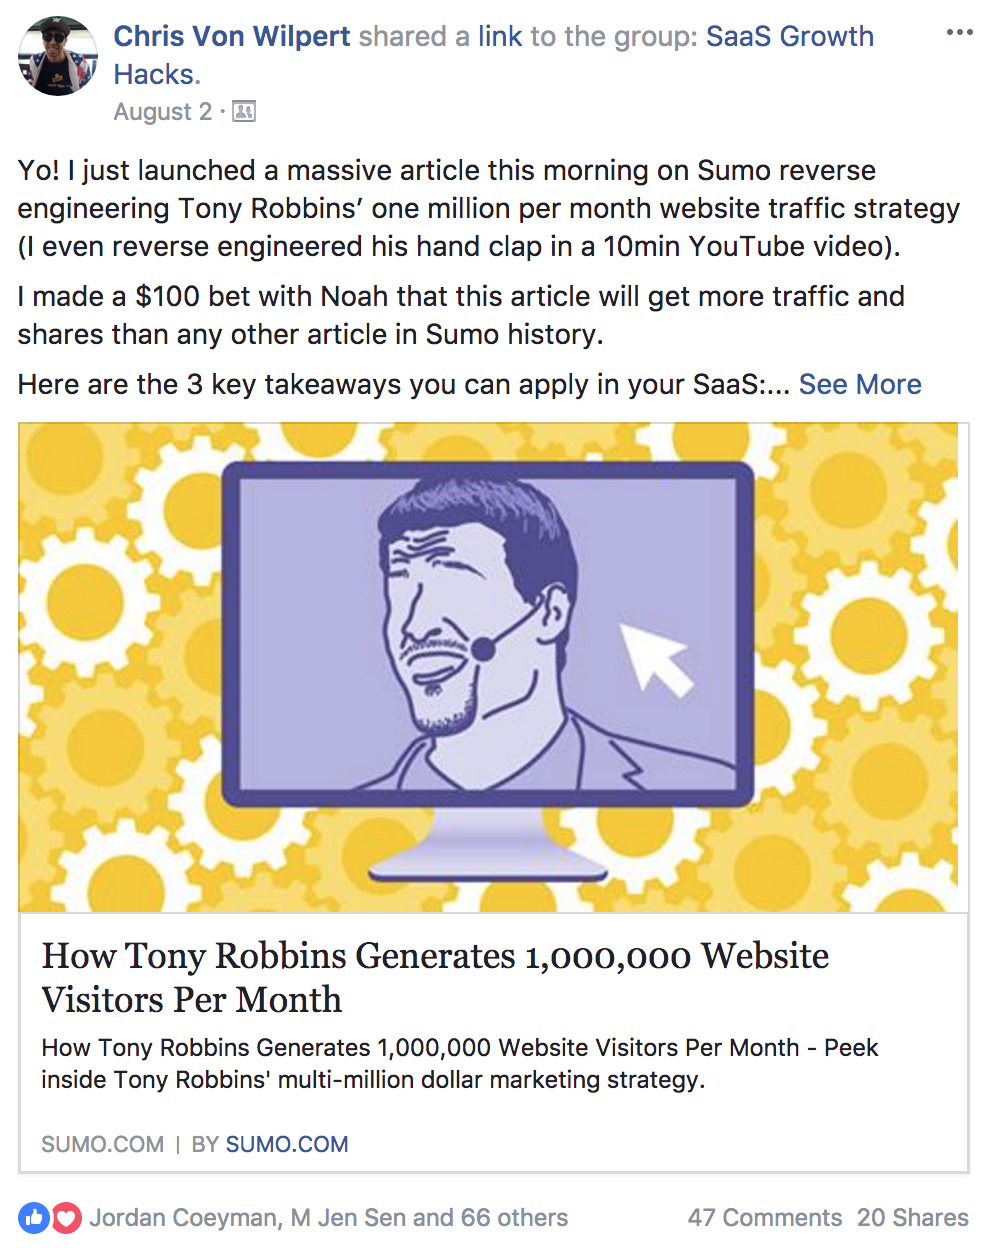 134 Ways To Increase Website Traffic In 2019 (Easy, Fast & Effective)